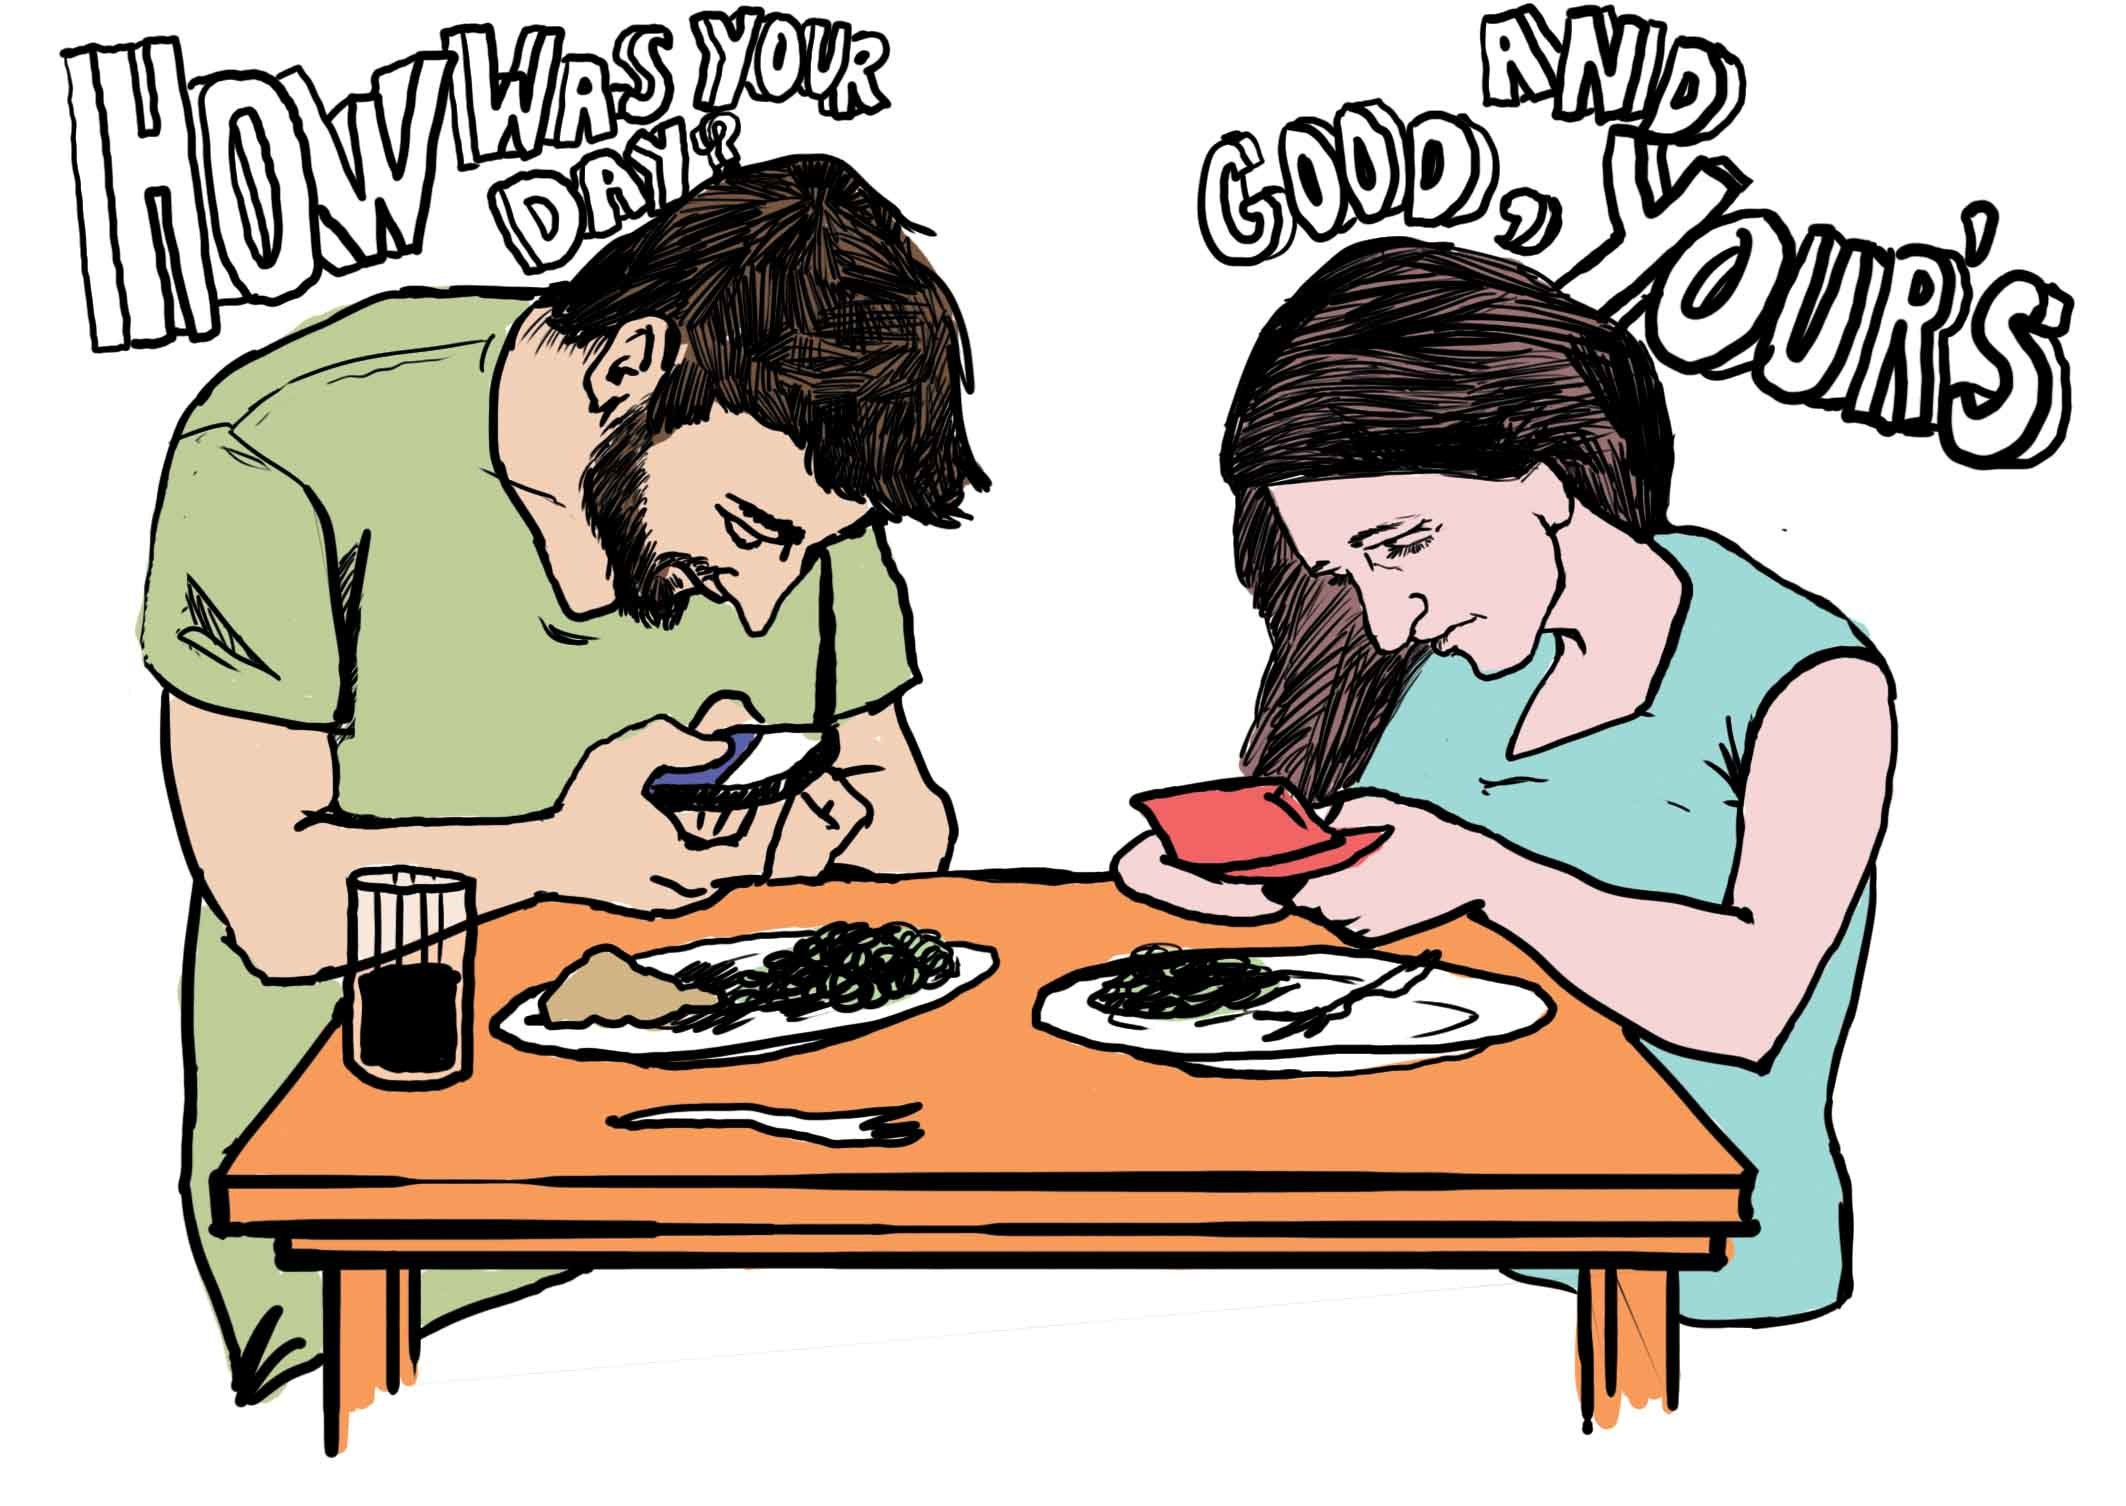 Texting at the table